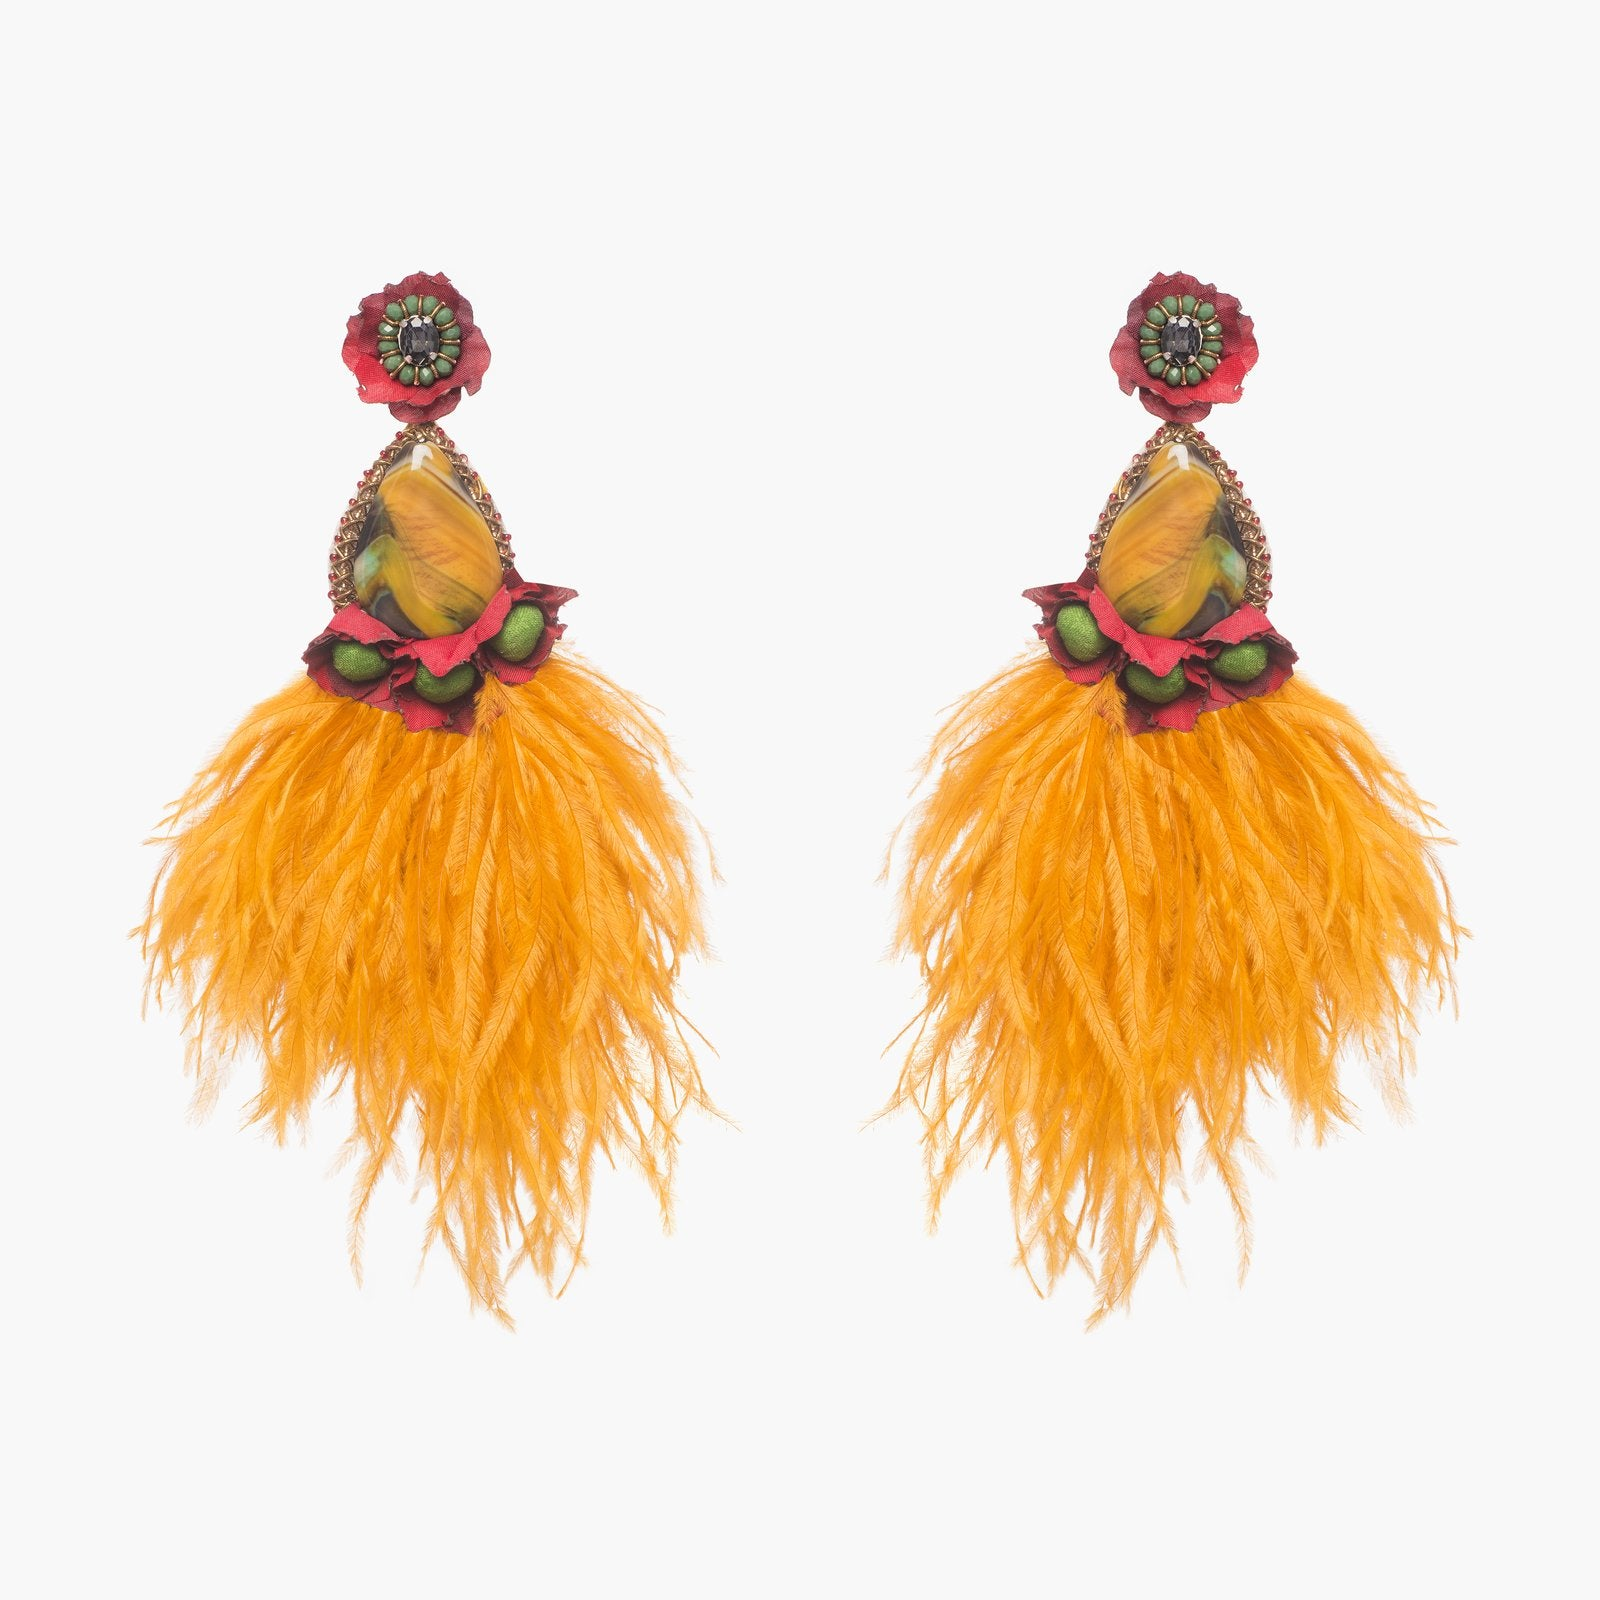 Santana Earrings by Ranjana Khan